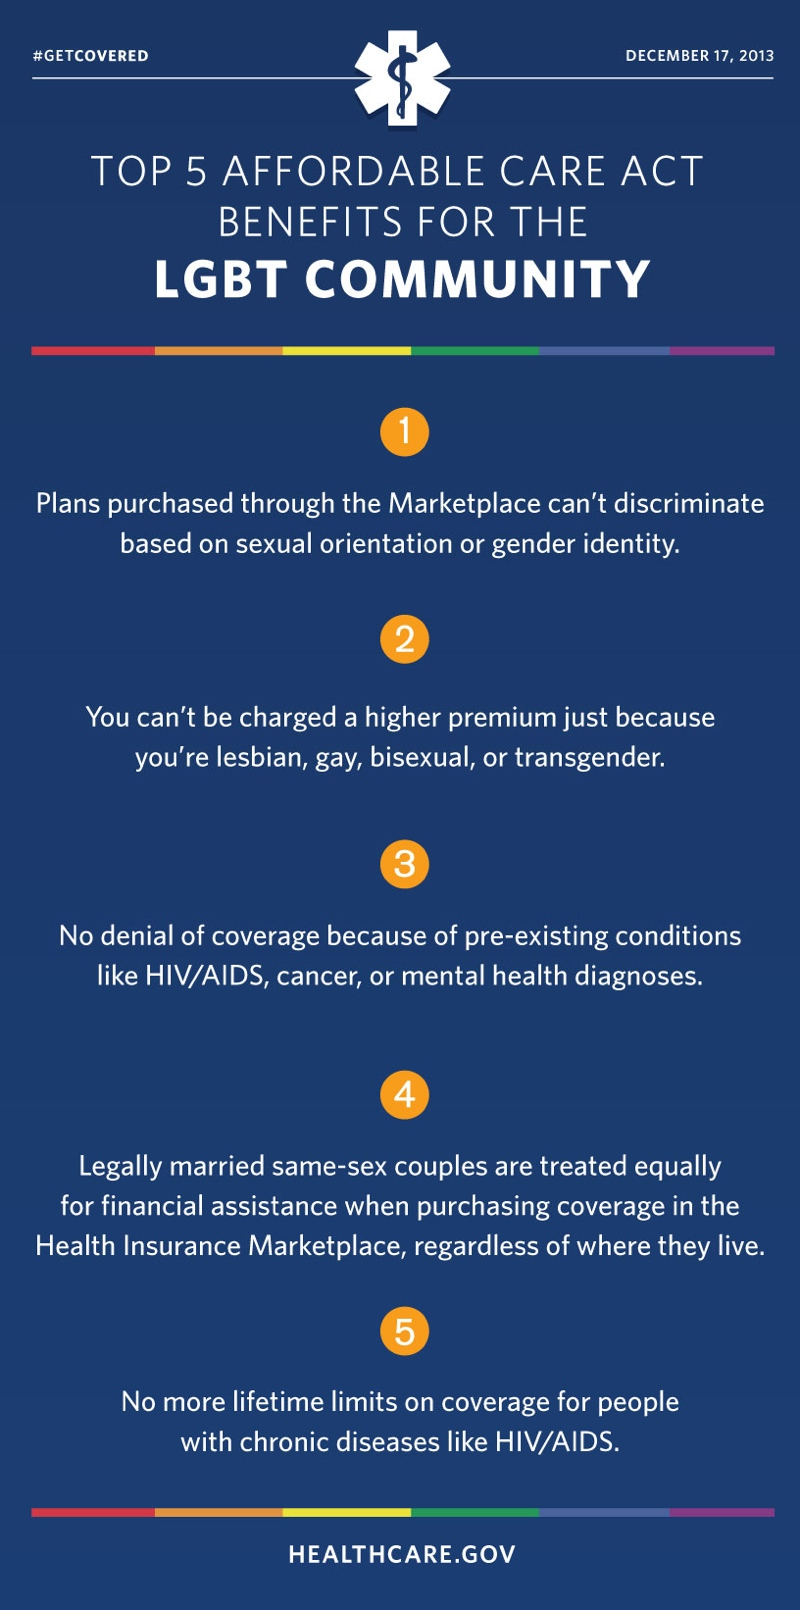 How Obamacare Benefits LGBT infographic